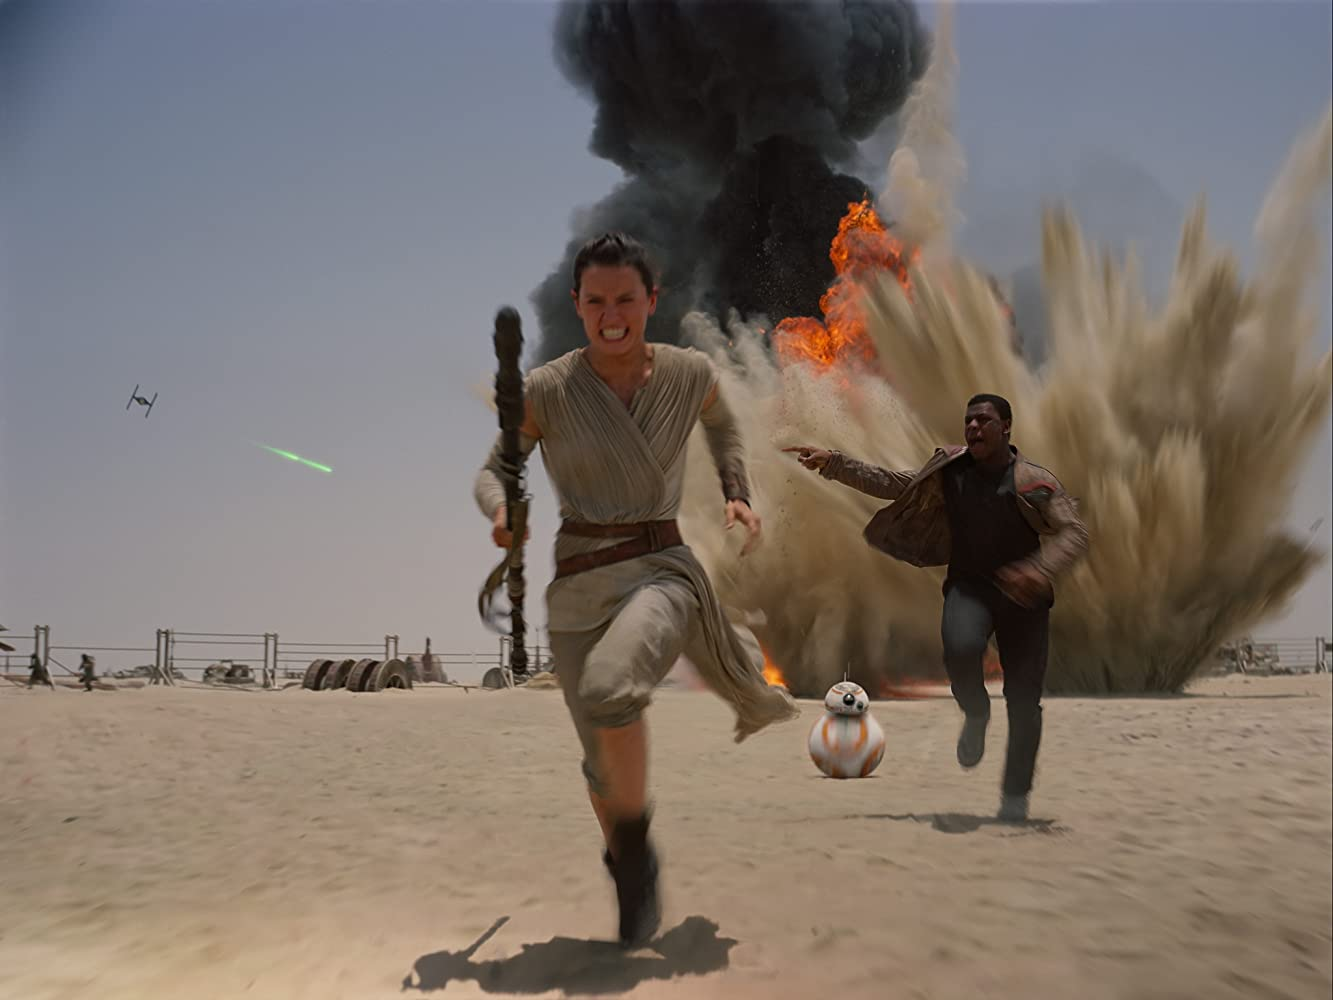 John Boyega and Daisy Ridley in Star Wars: Episode VII - The Force Awakens (2015)